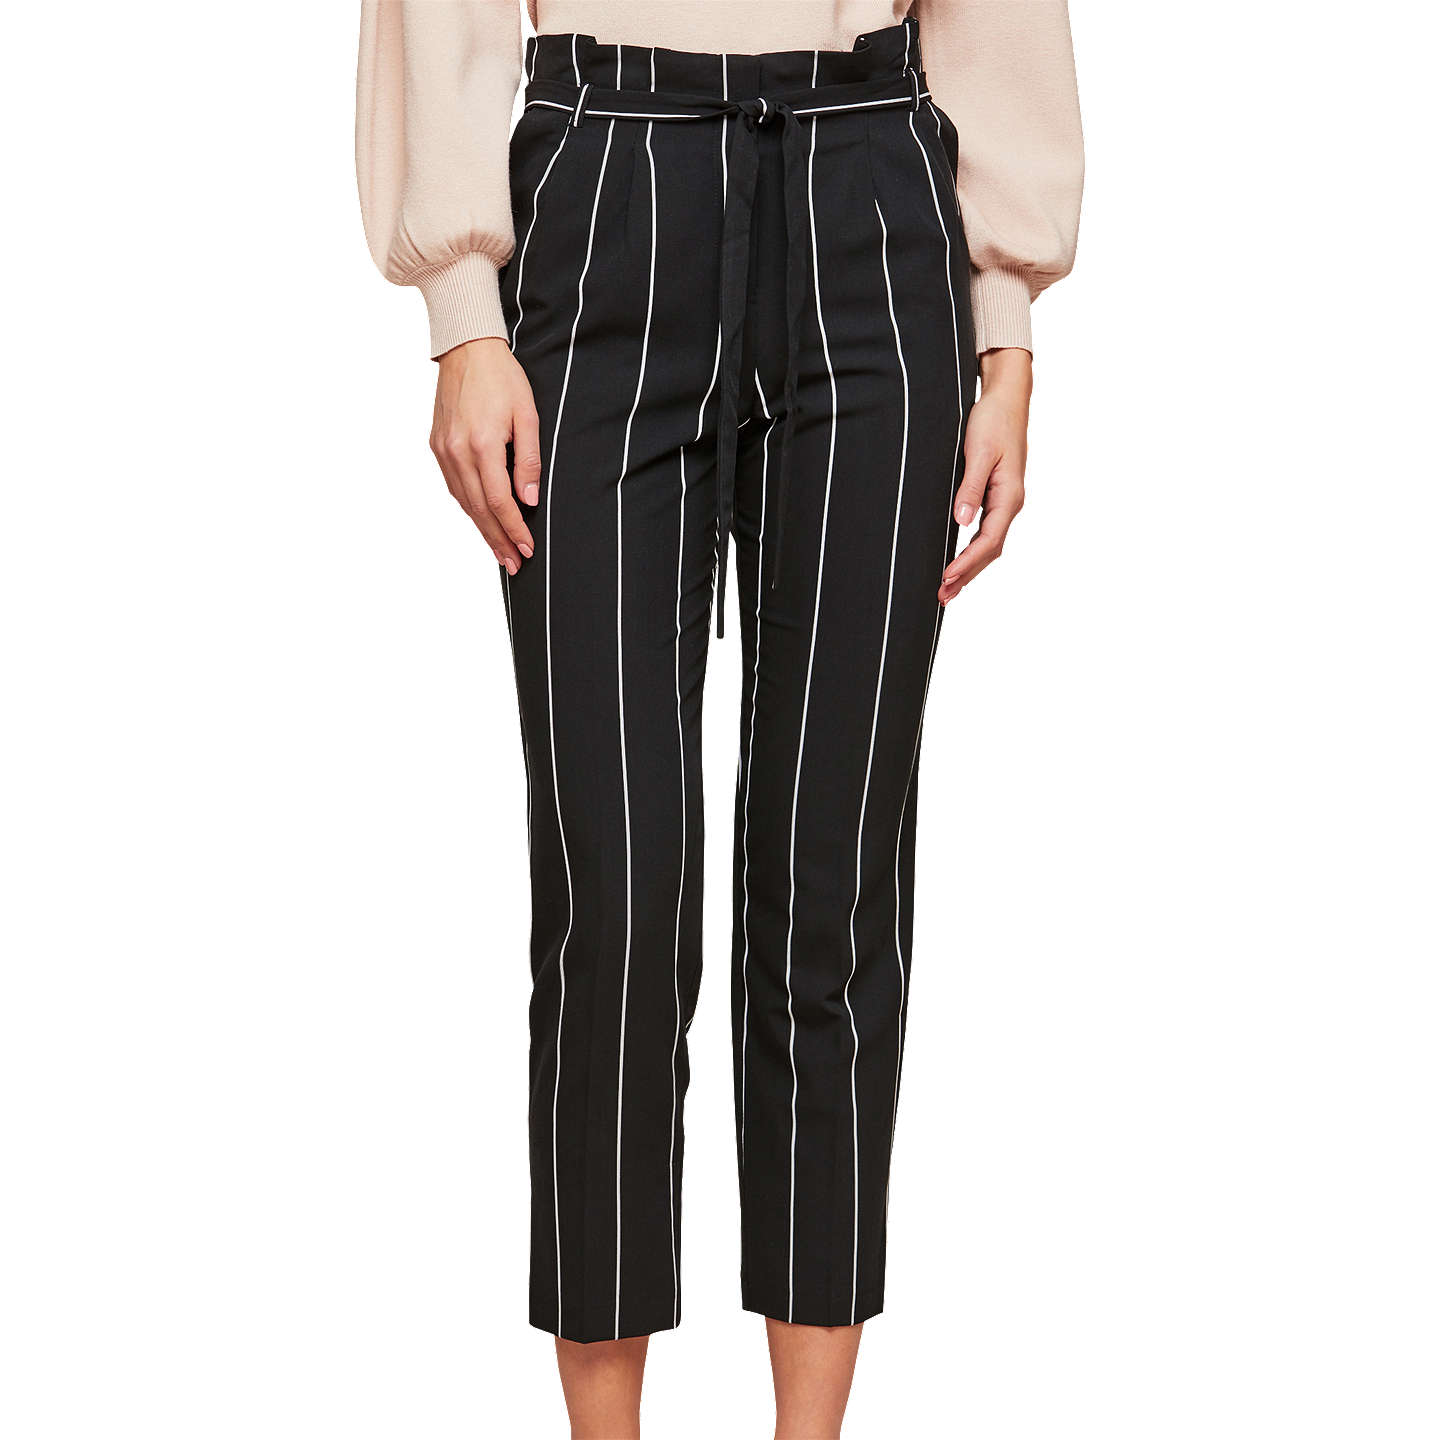 BuyMiss Selfridge Paper Bag Trousers, Black, 6 Online at johnlewis.com